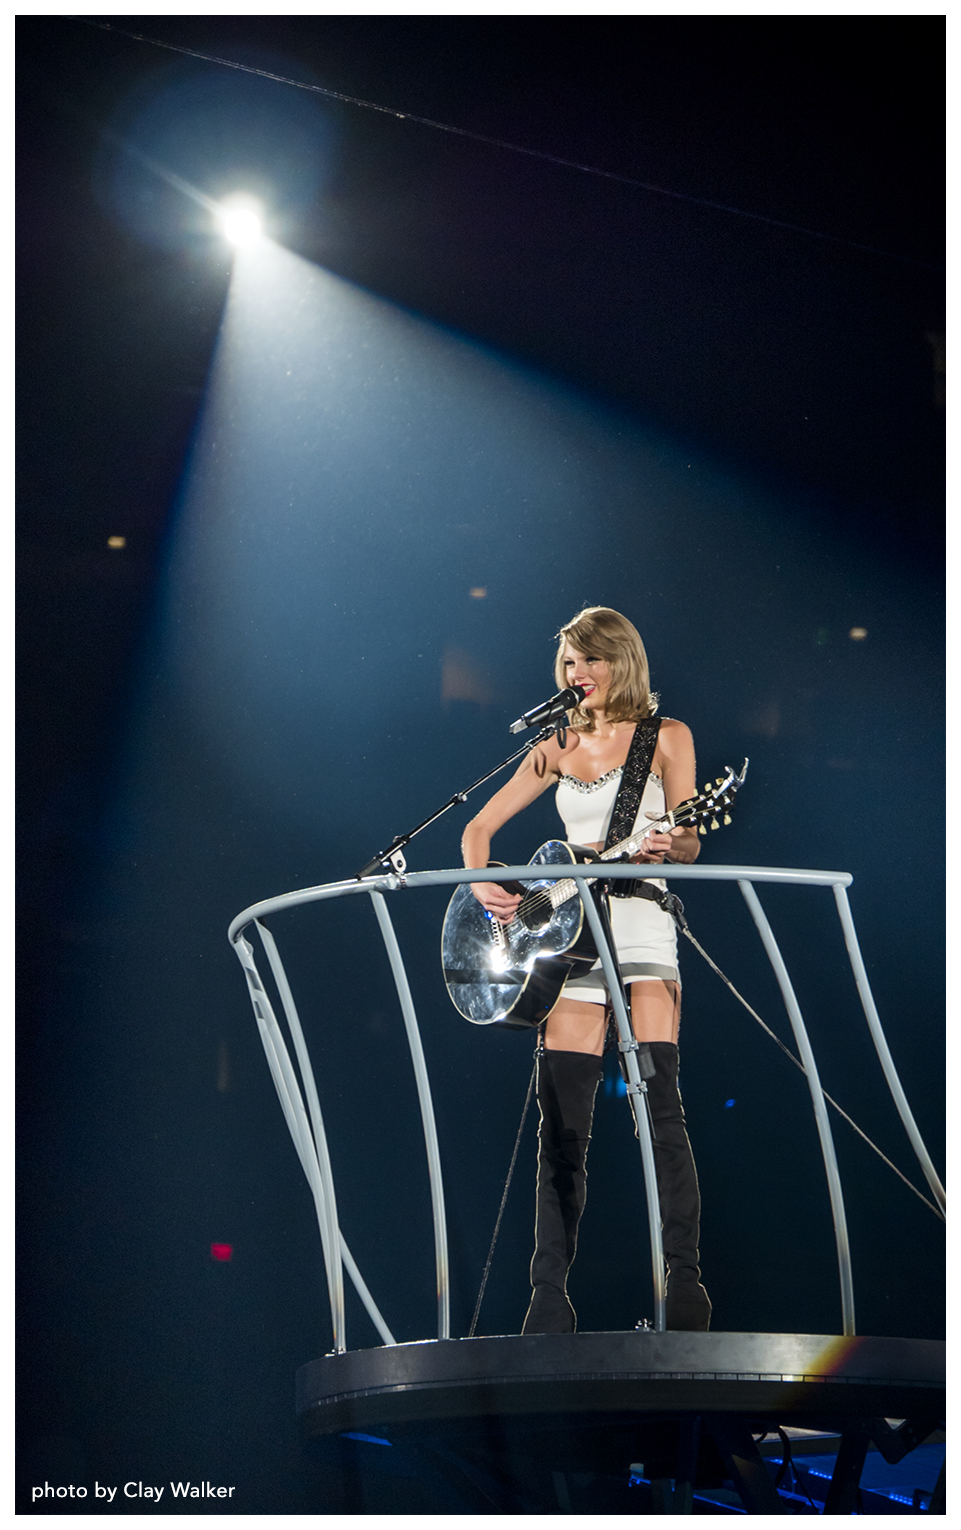 taylor swift photo by clay walker author c